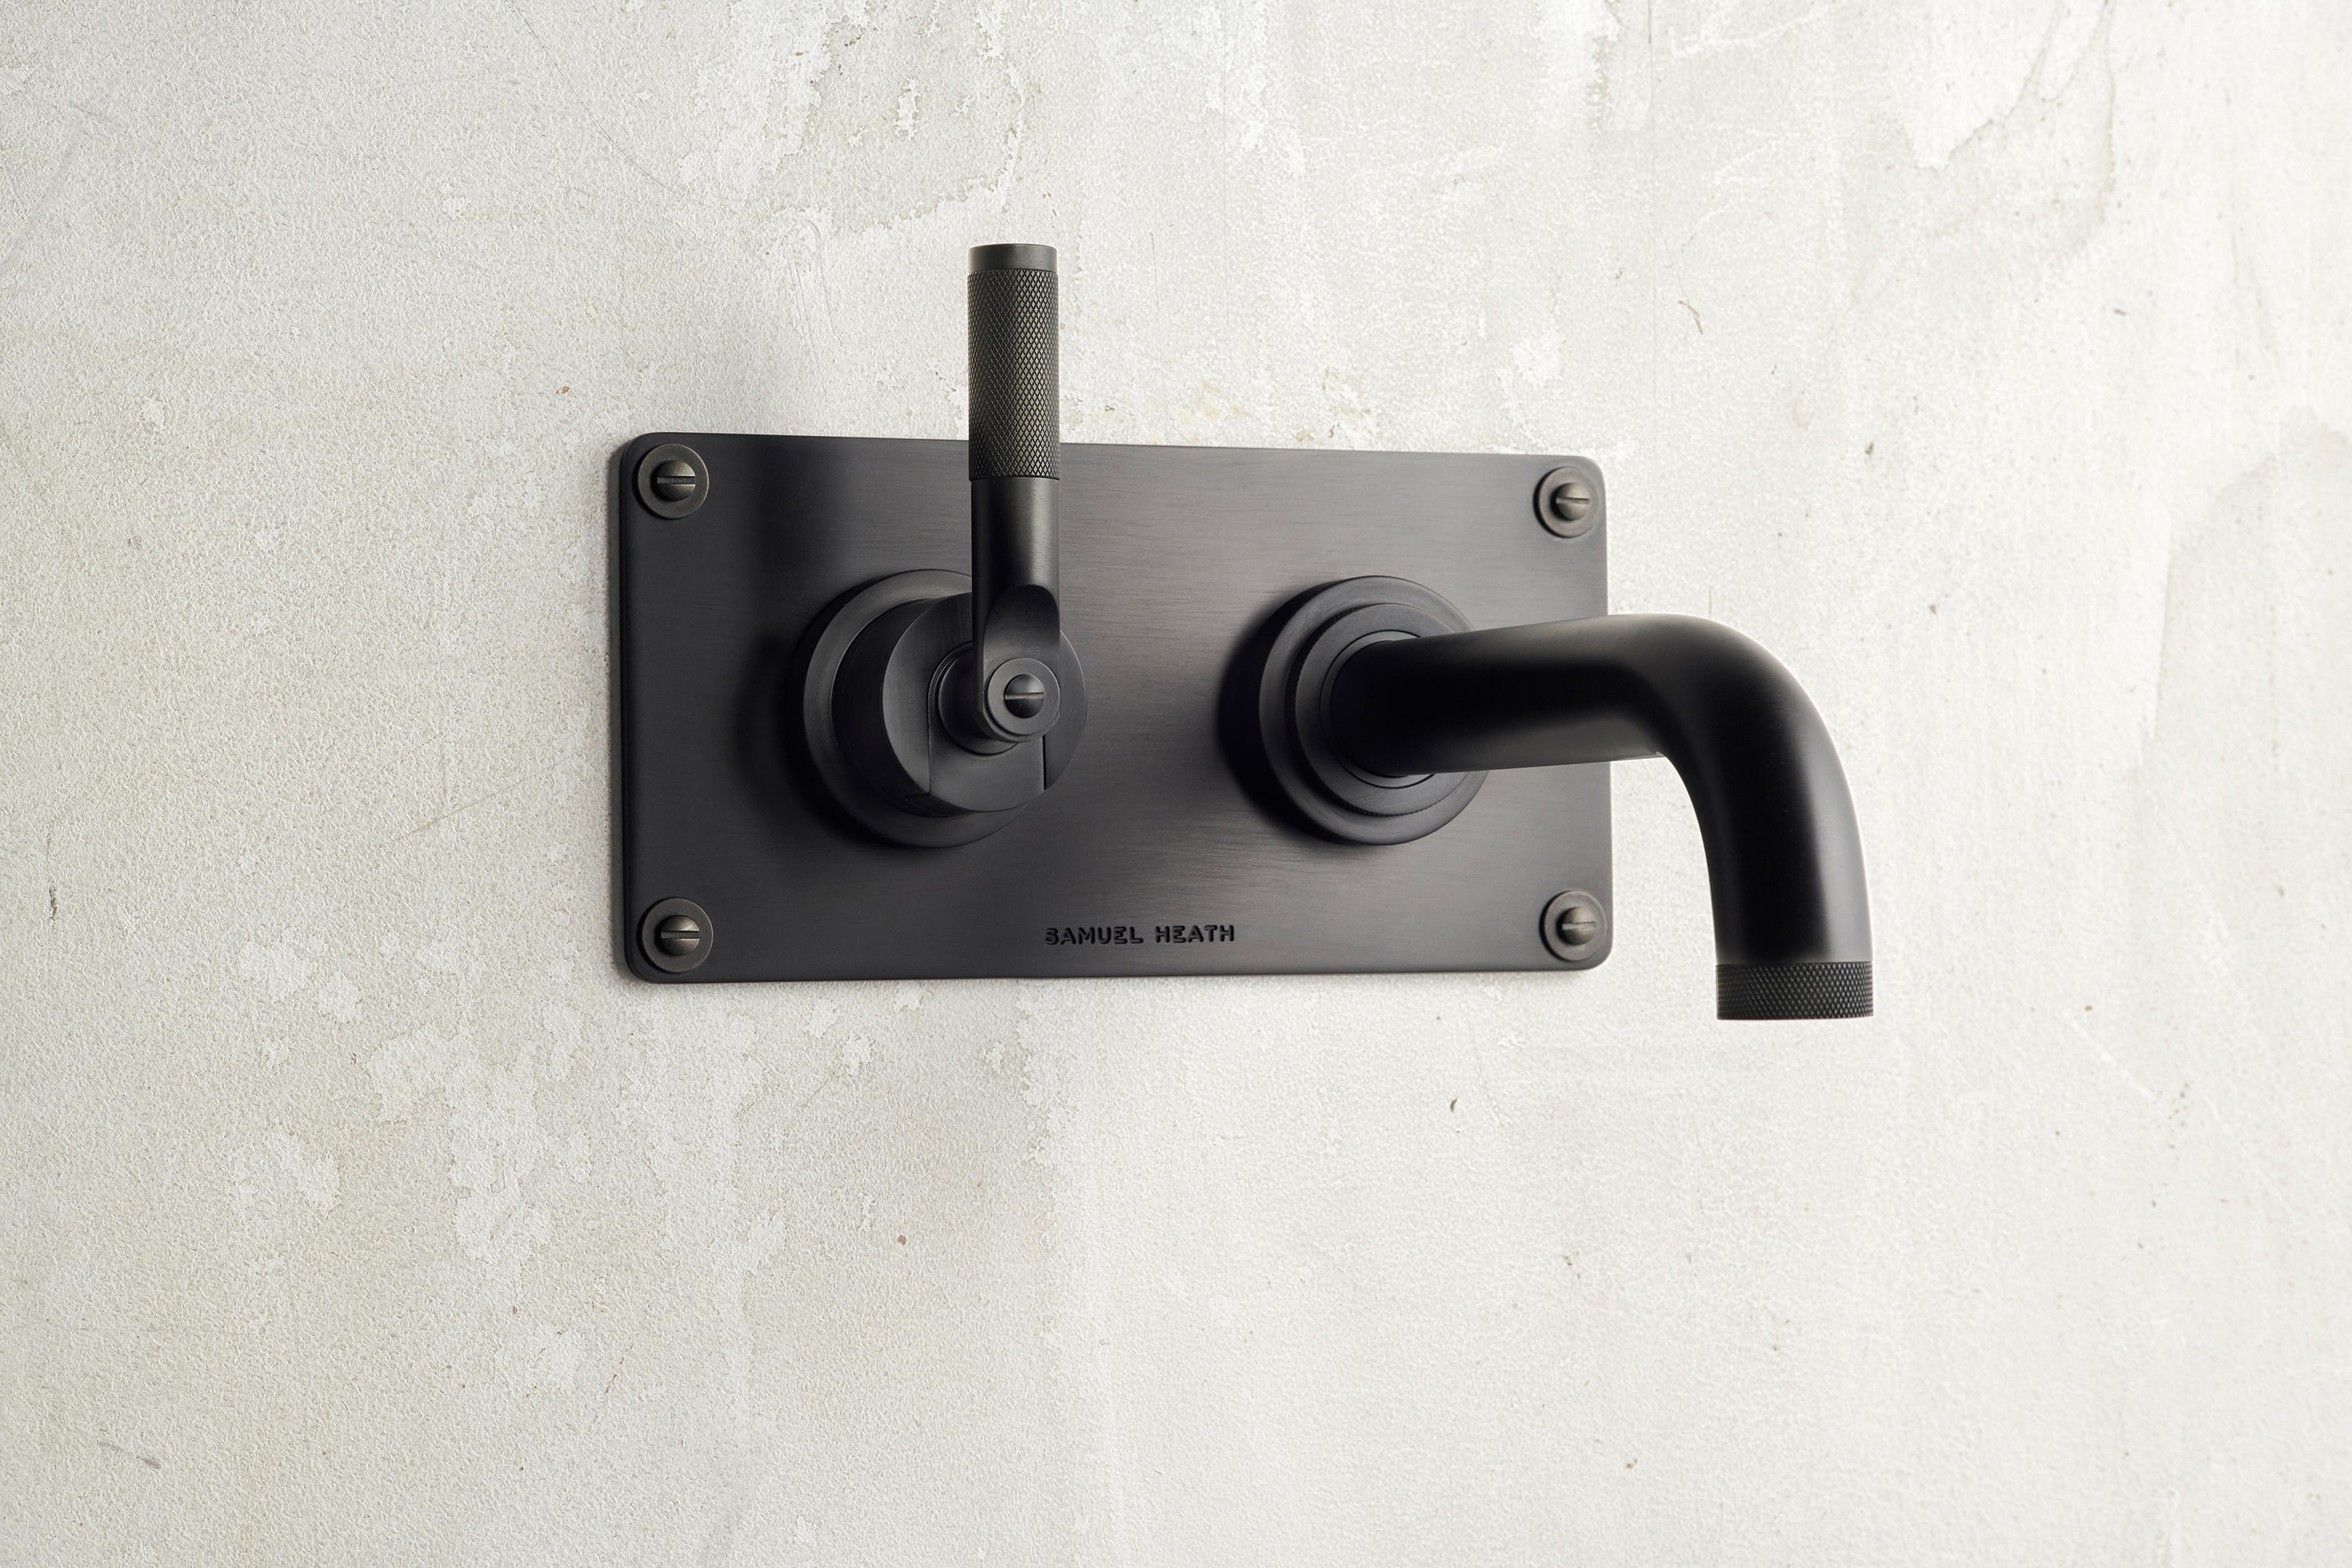 Picture of: Lmk Industrial Wall Mounted Lavatory Mixer Matte Black Chrome Architonic